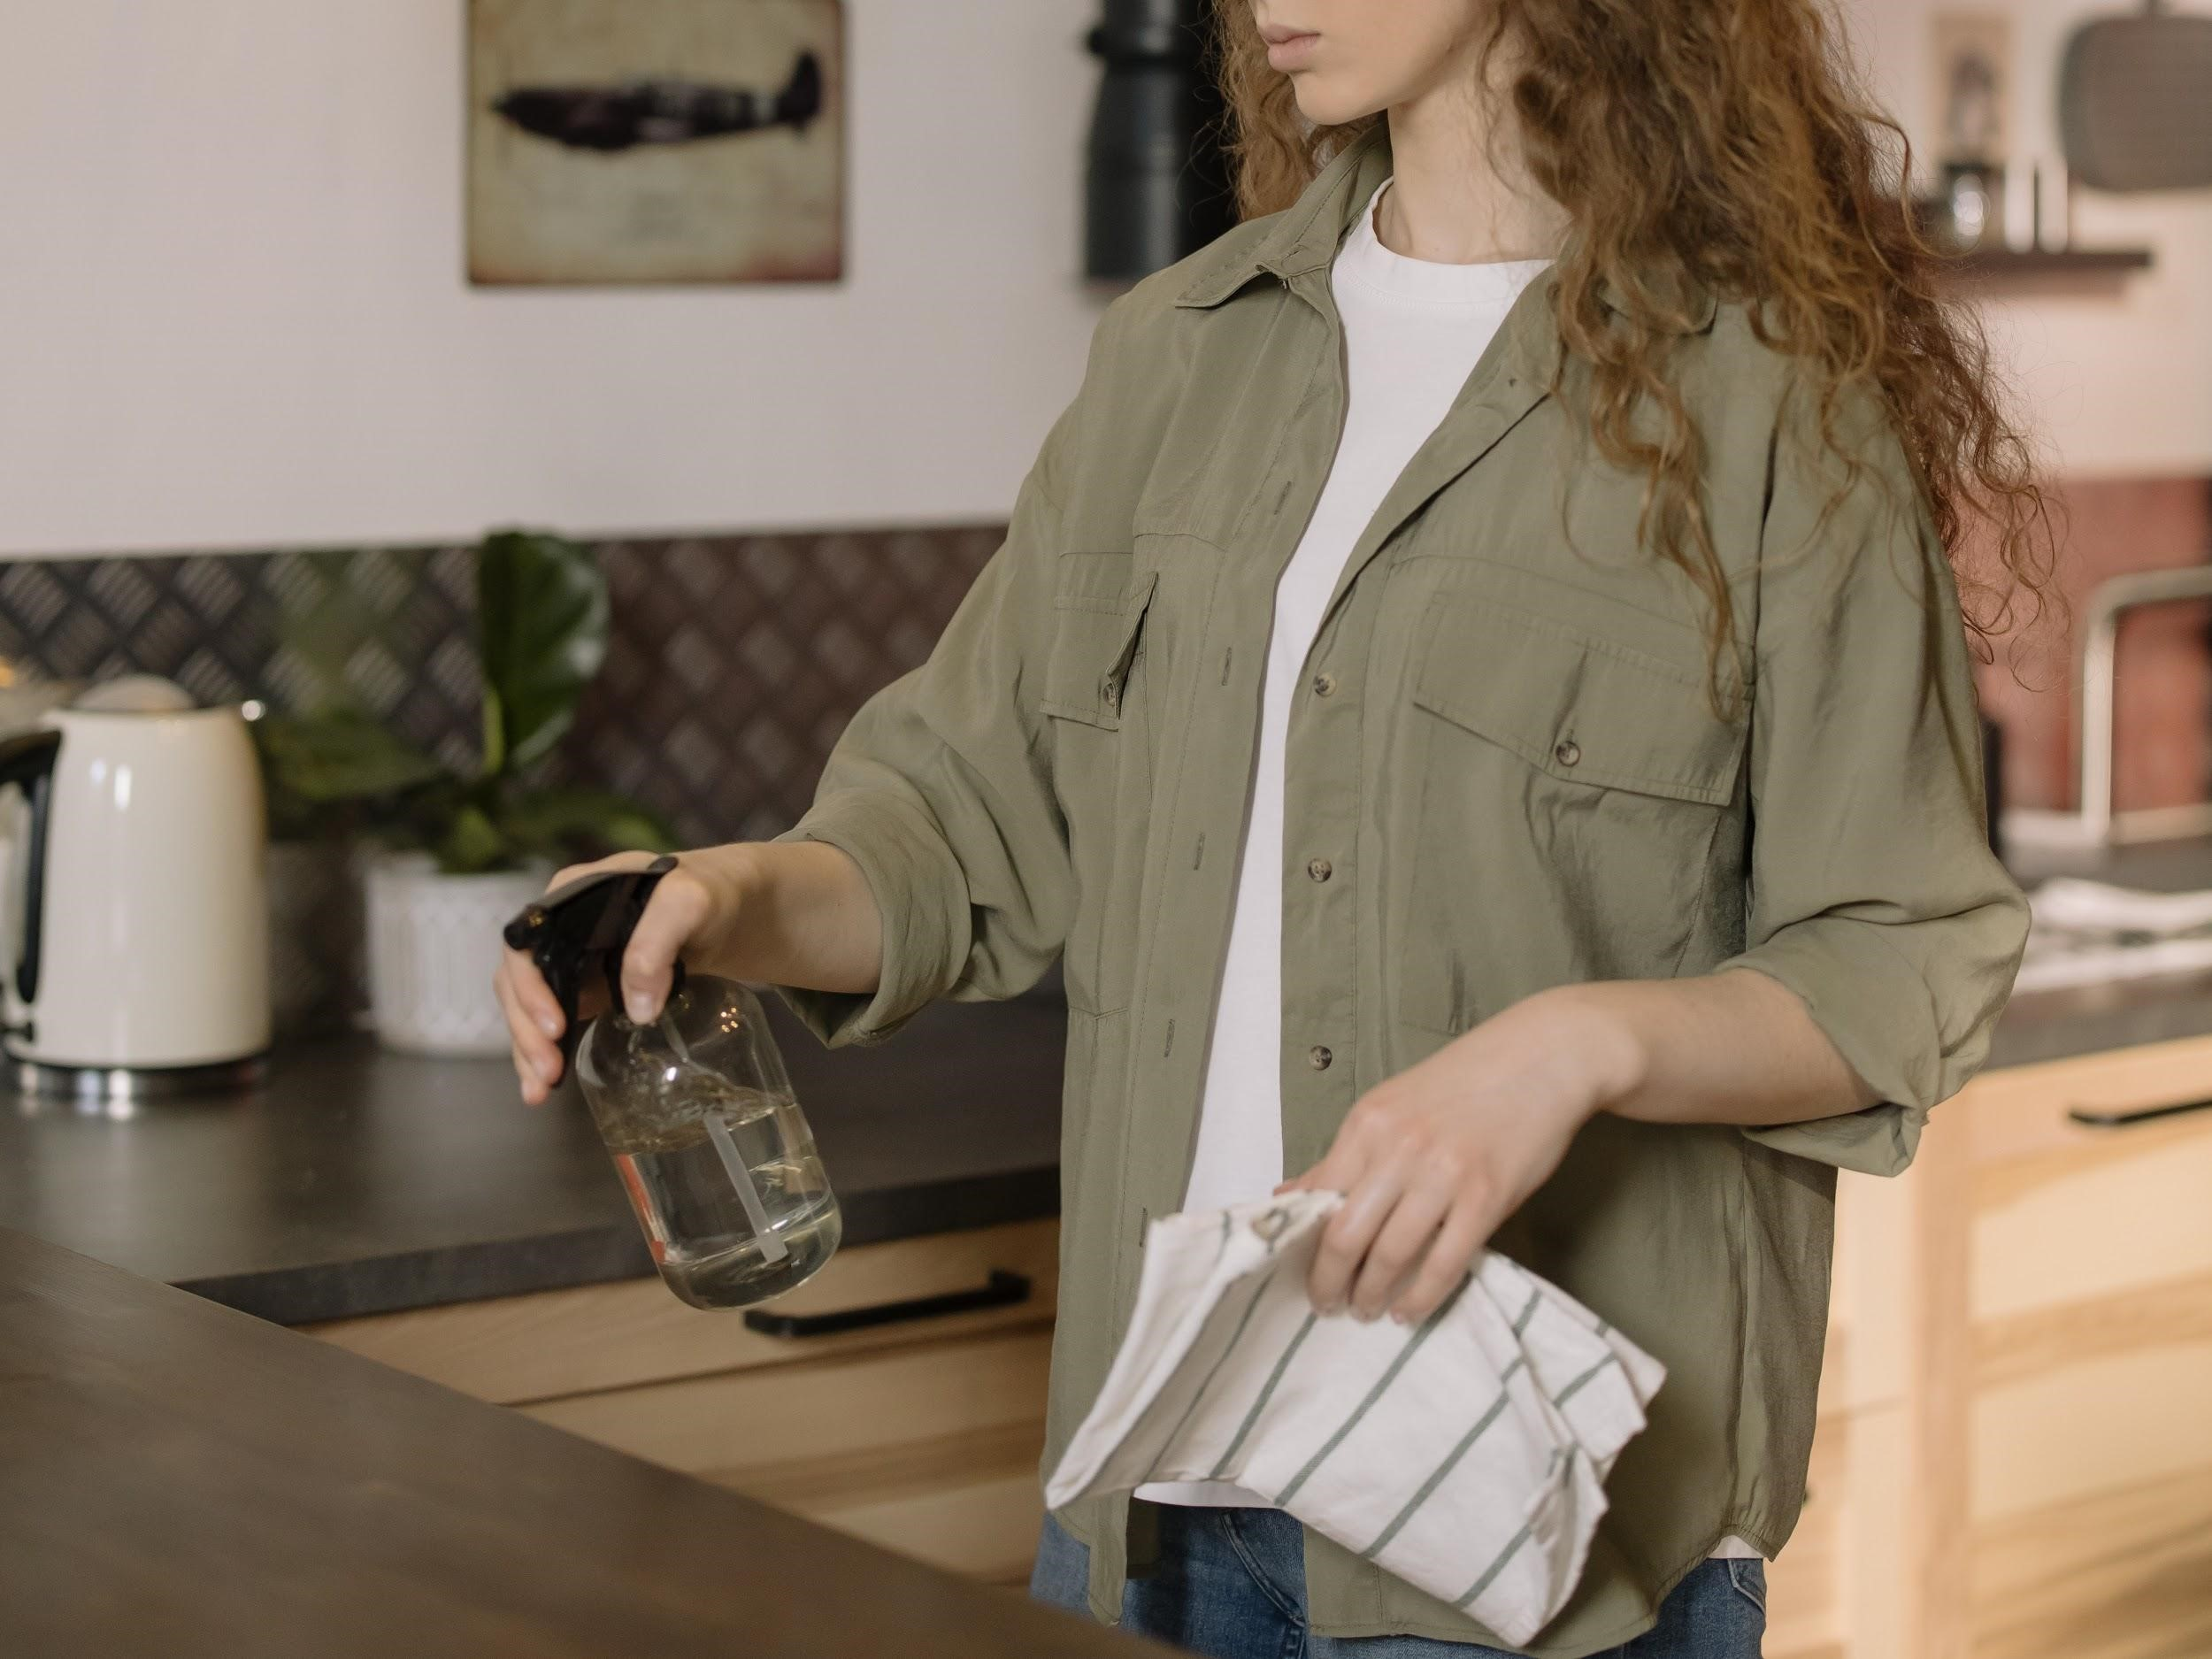 How to Clean Your Home Fast and Easy: 5 Home Cleaning Tips?